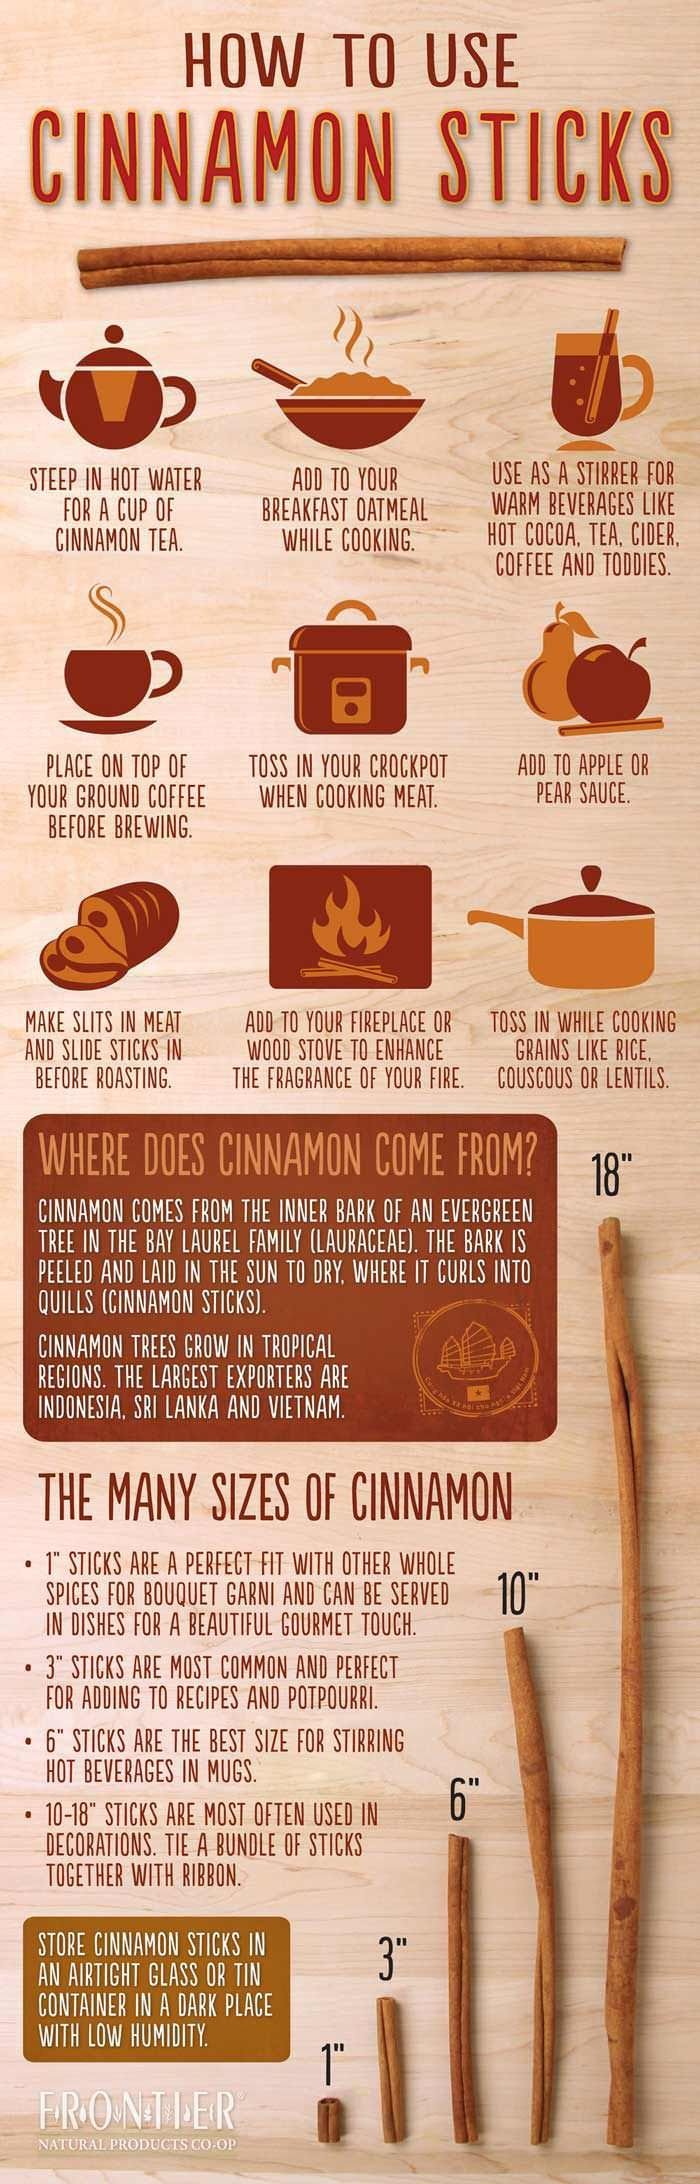 How to Use Cinnamon Sticks Infographic